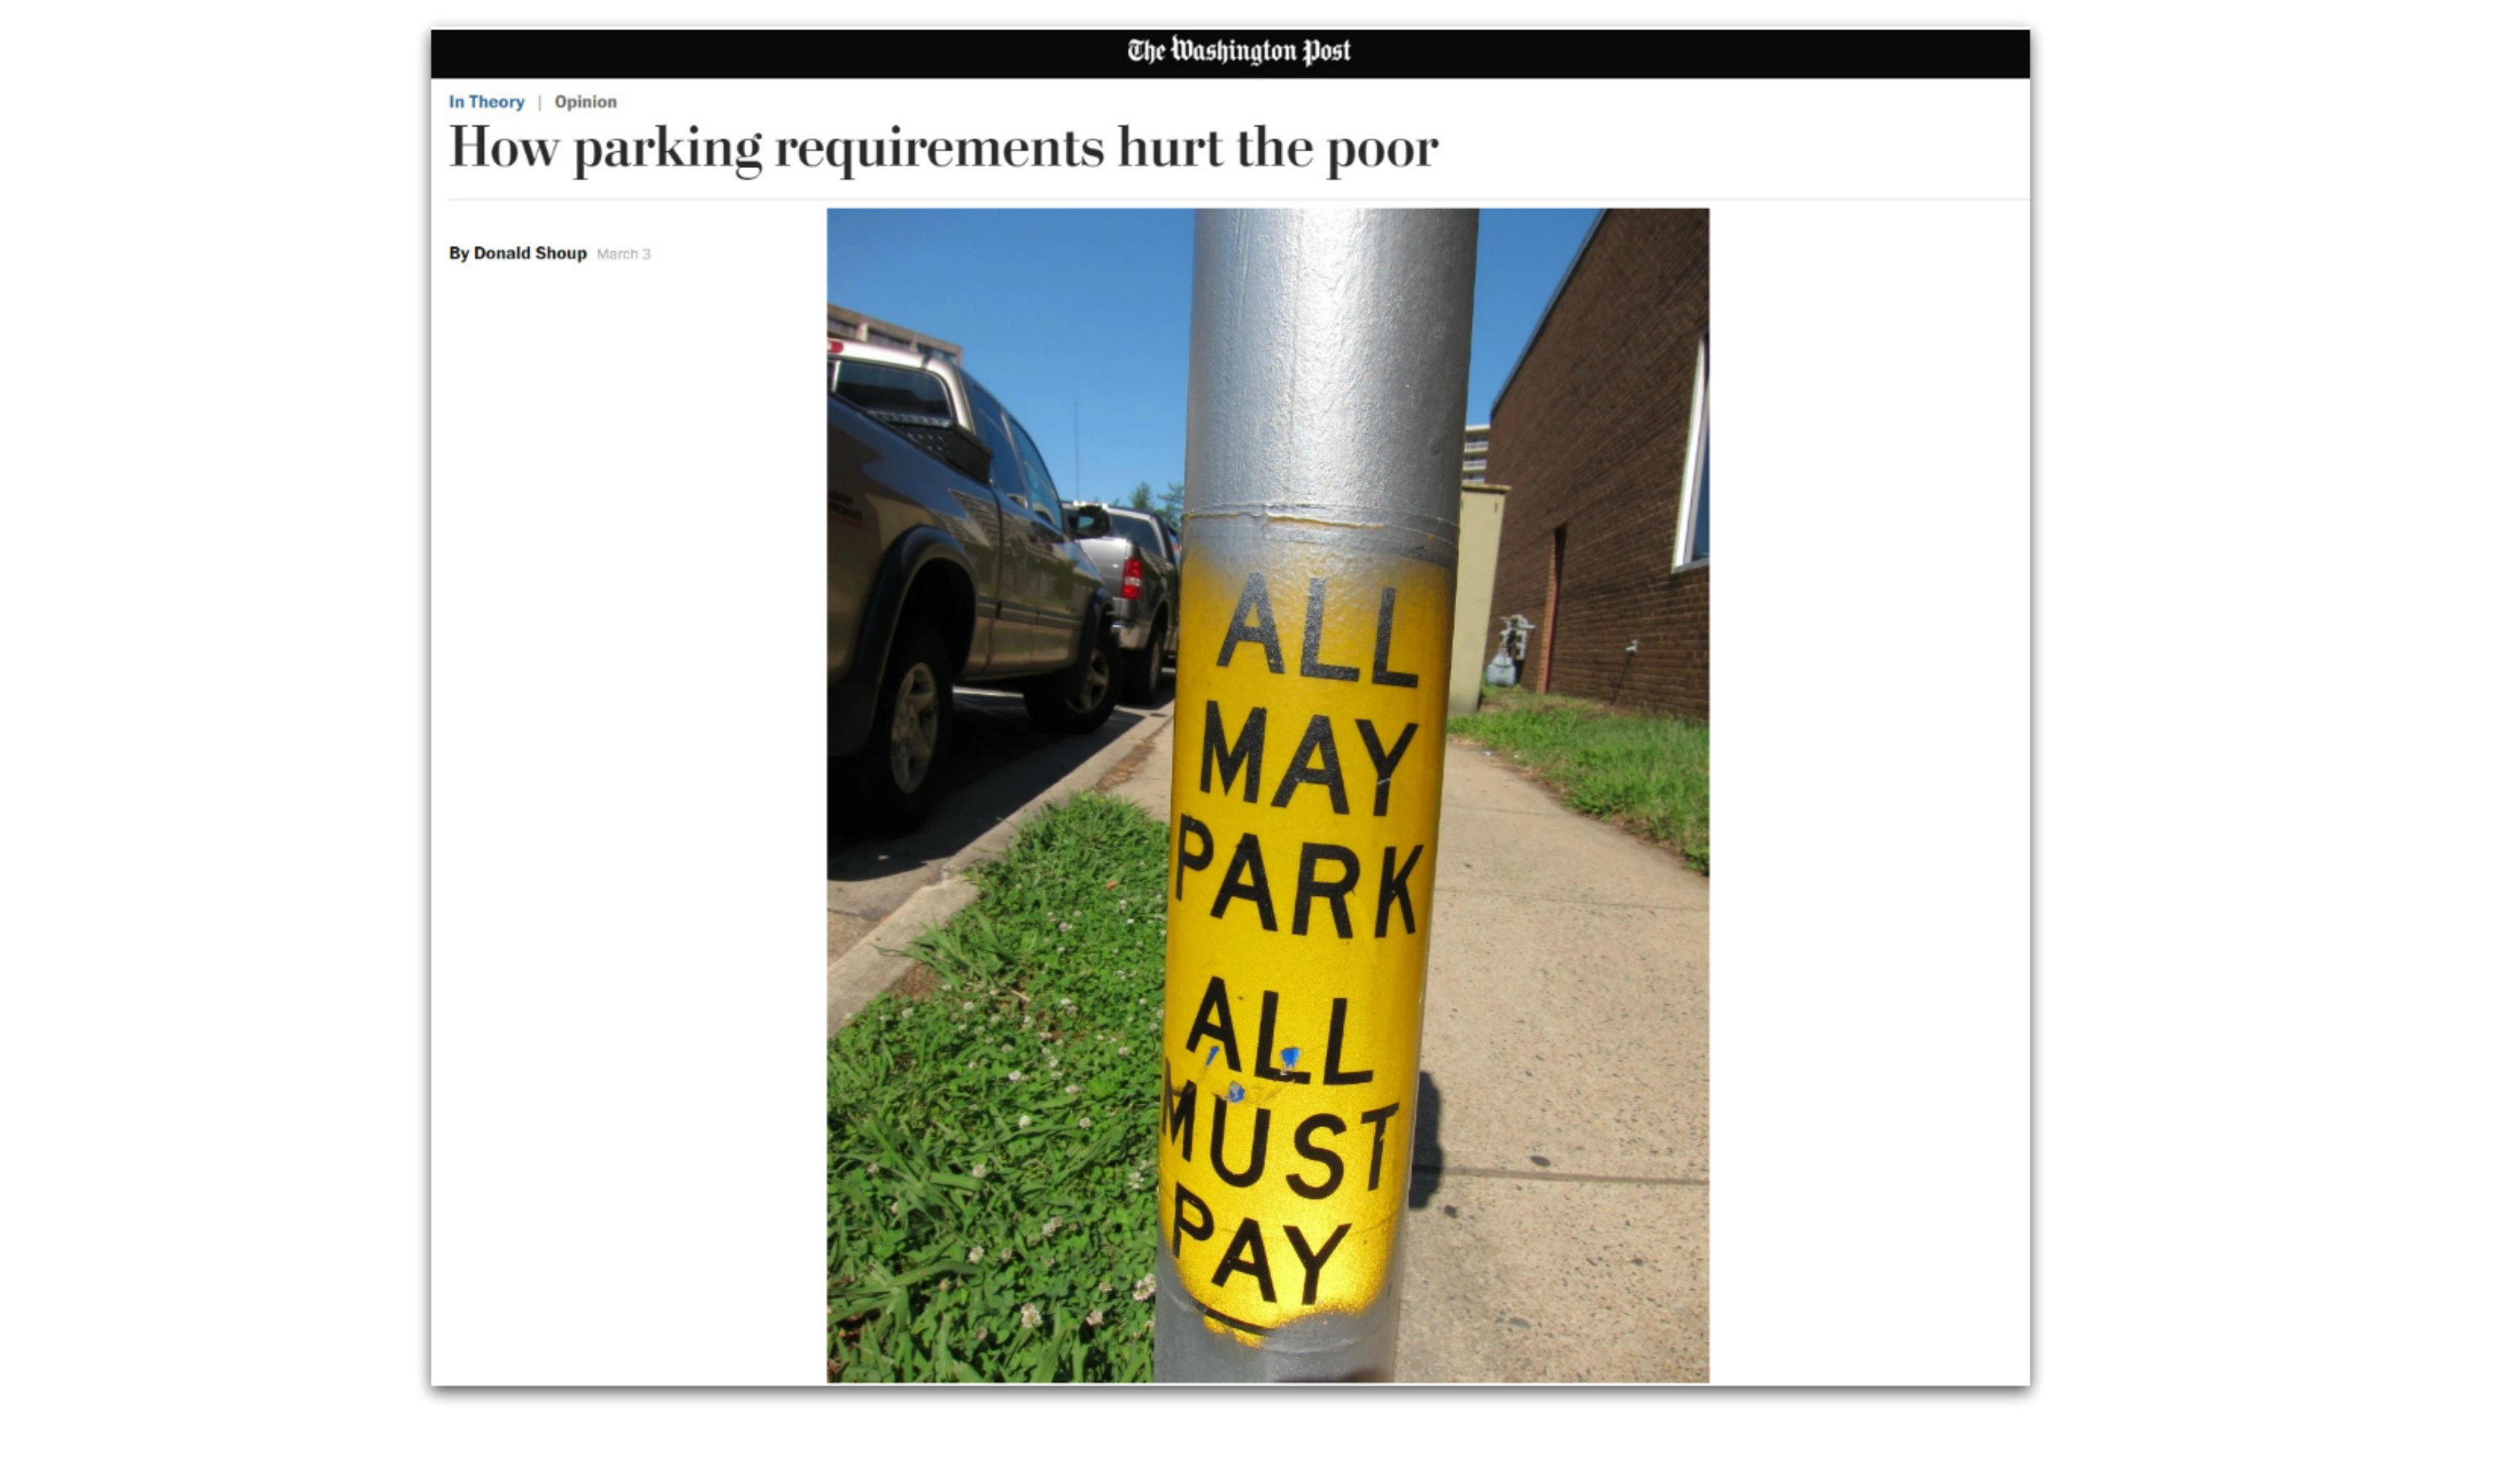 EastFallsLocal Washington Post hurt the poor parking require POST RESIZE